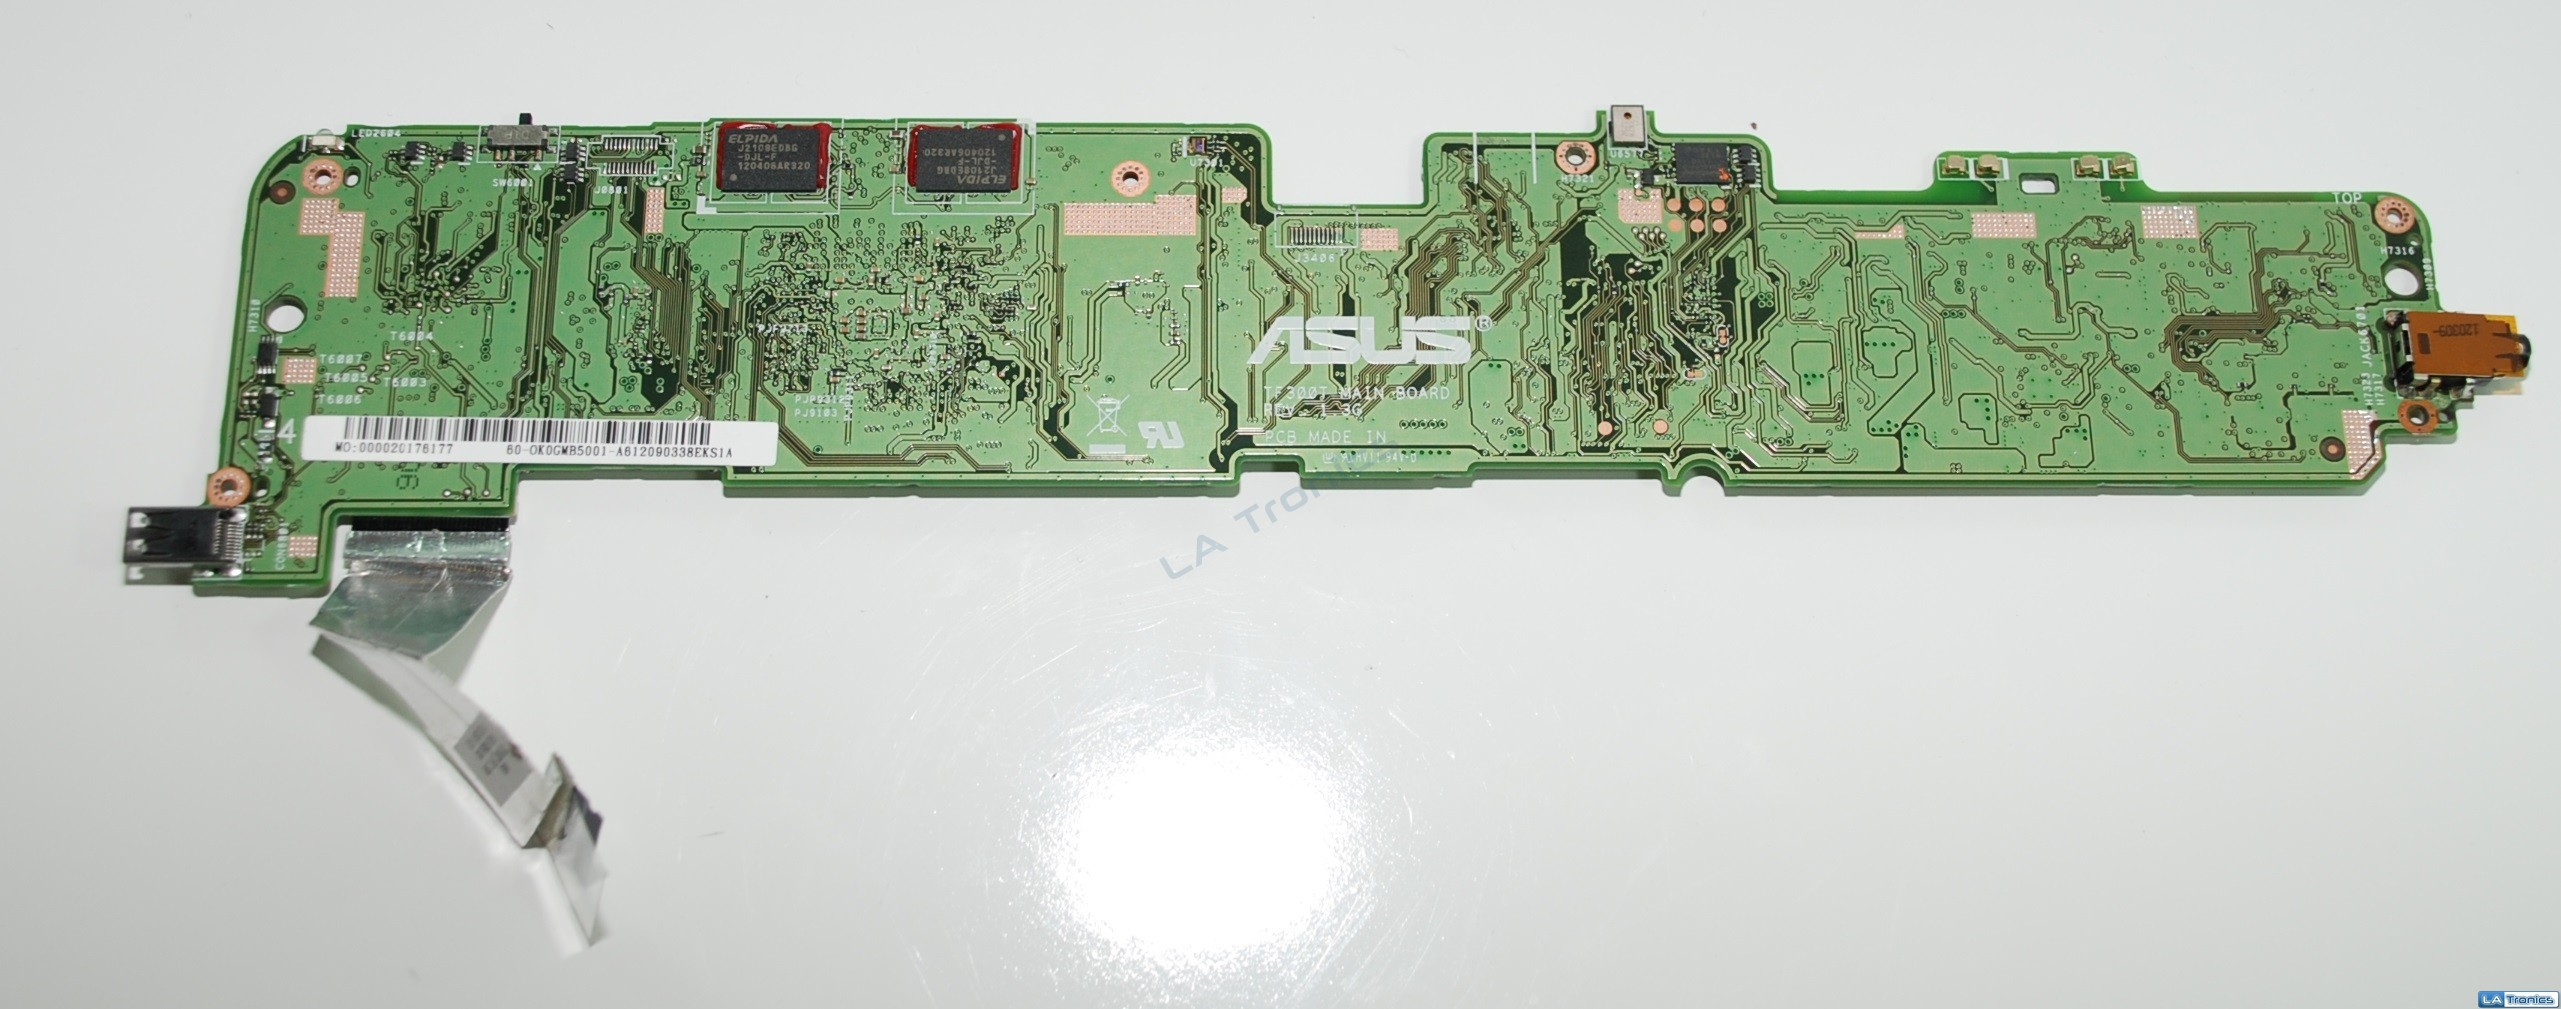 Asus Transformer TF300T 16 GB Tablet OEM Motherboard 60-OK0GMB5001 TESTED